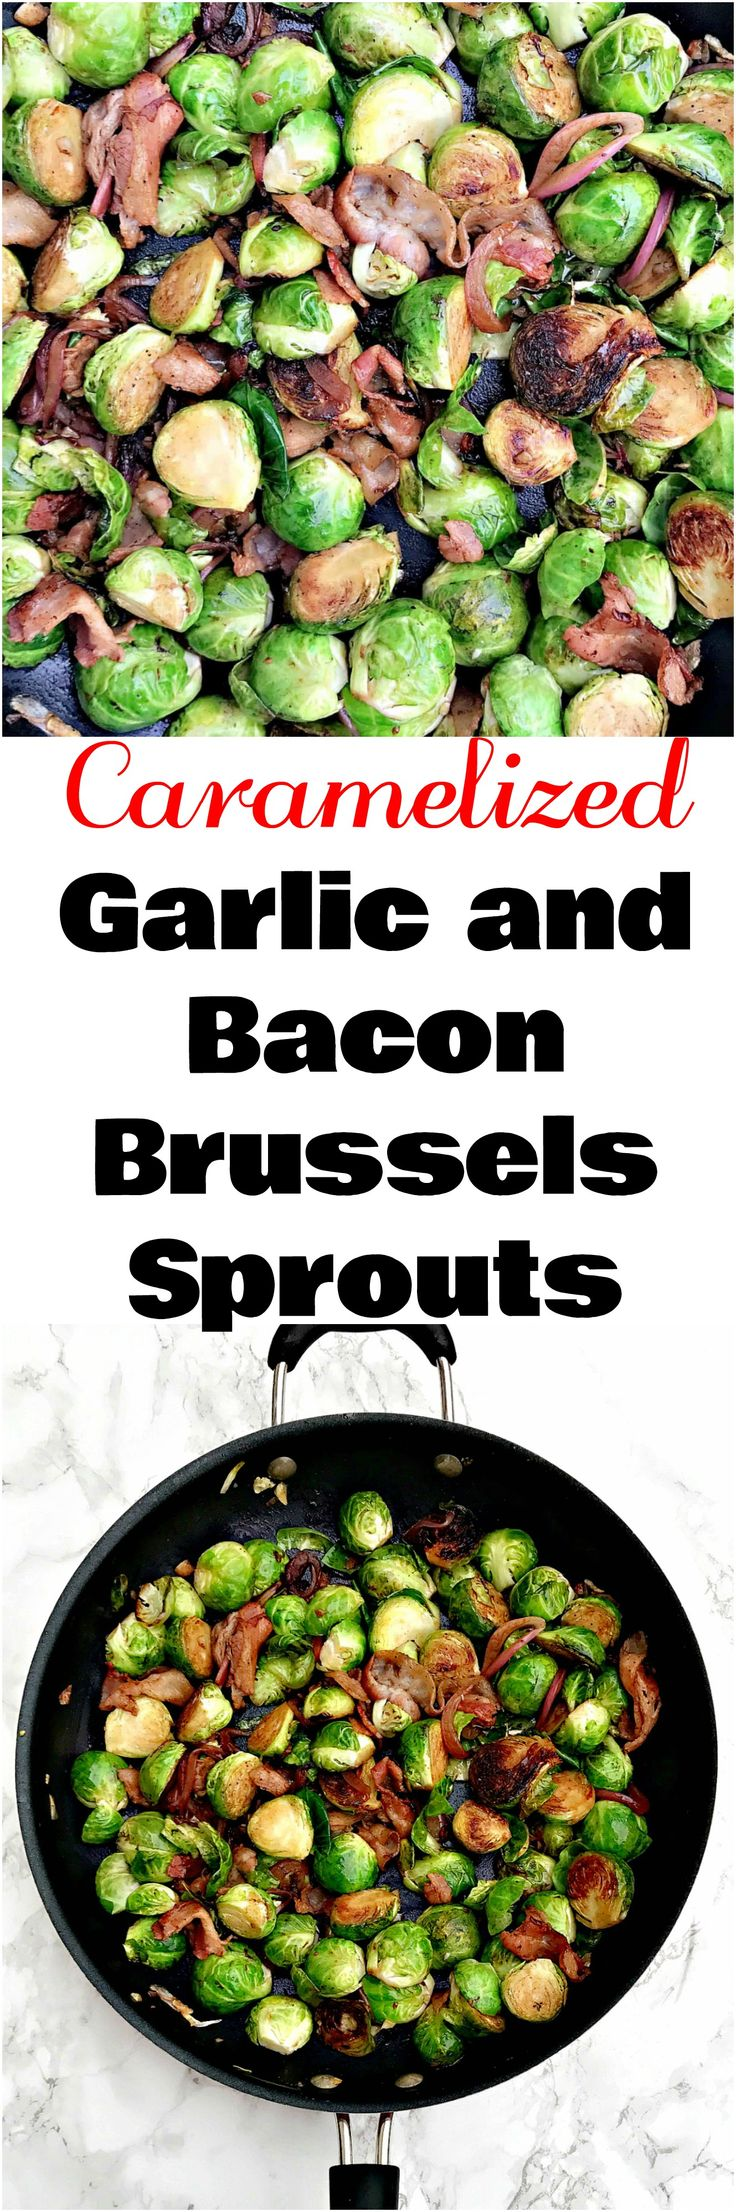 Caramelized Brussels Sprouts with Garlic and Bacon